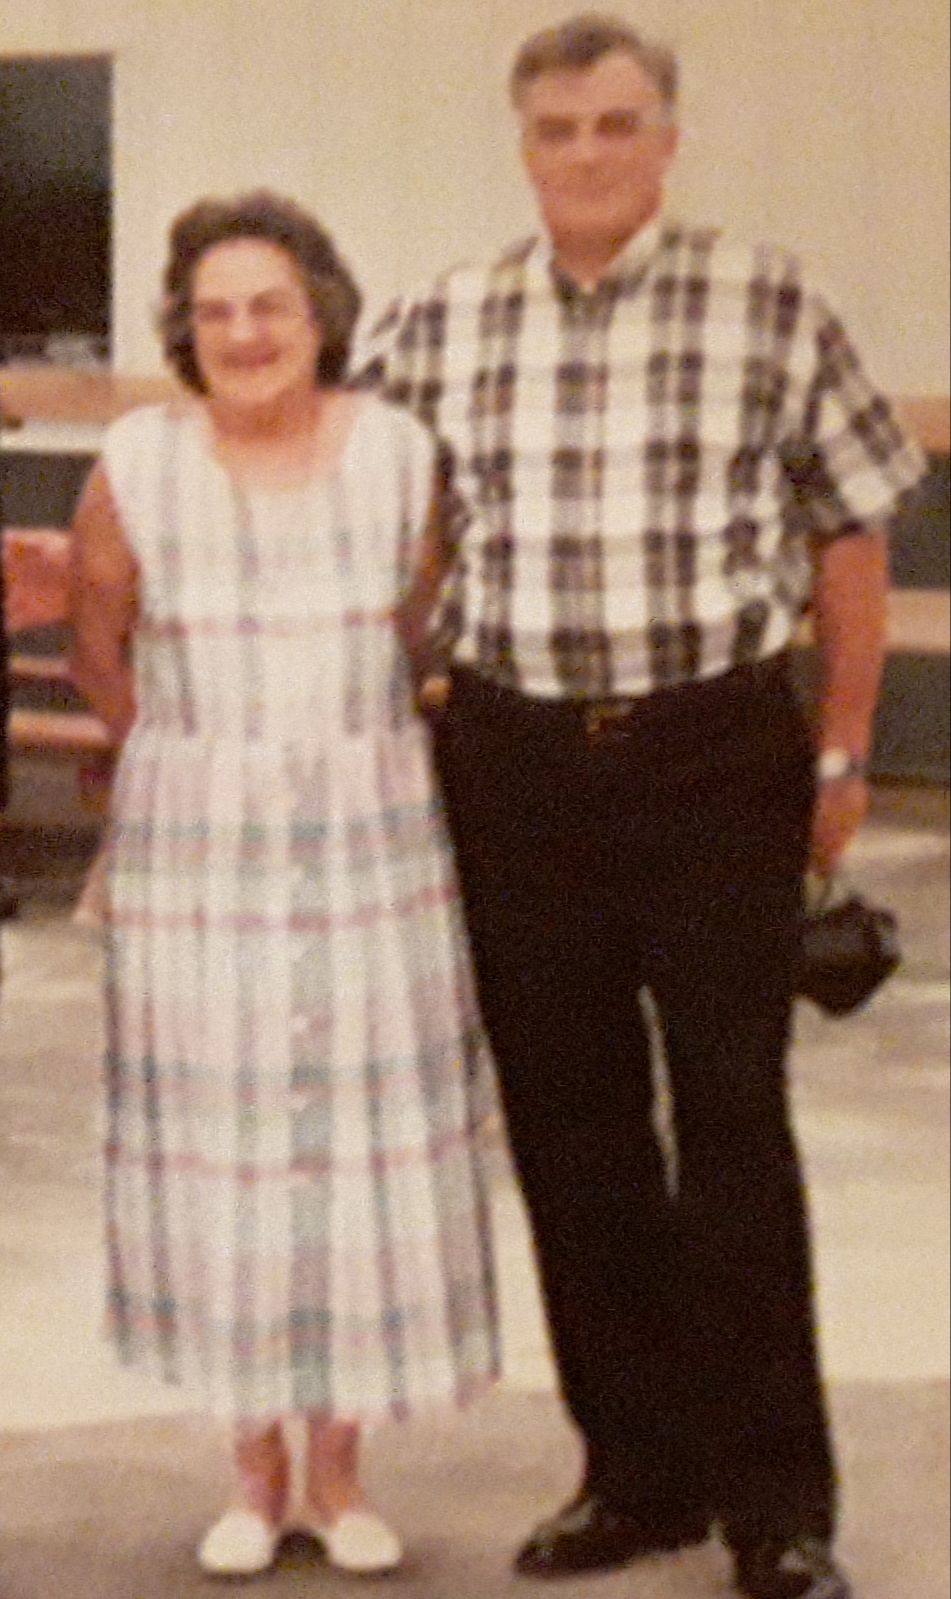 Mom and Uncle Shaun are together again in heaven. RIP Uncle Shaun. You are a great guy, may our memories of you and with you live for all eternity.